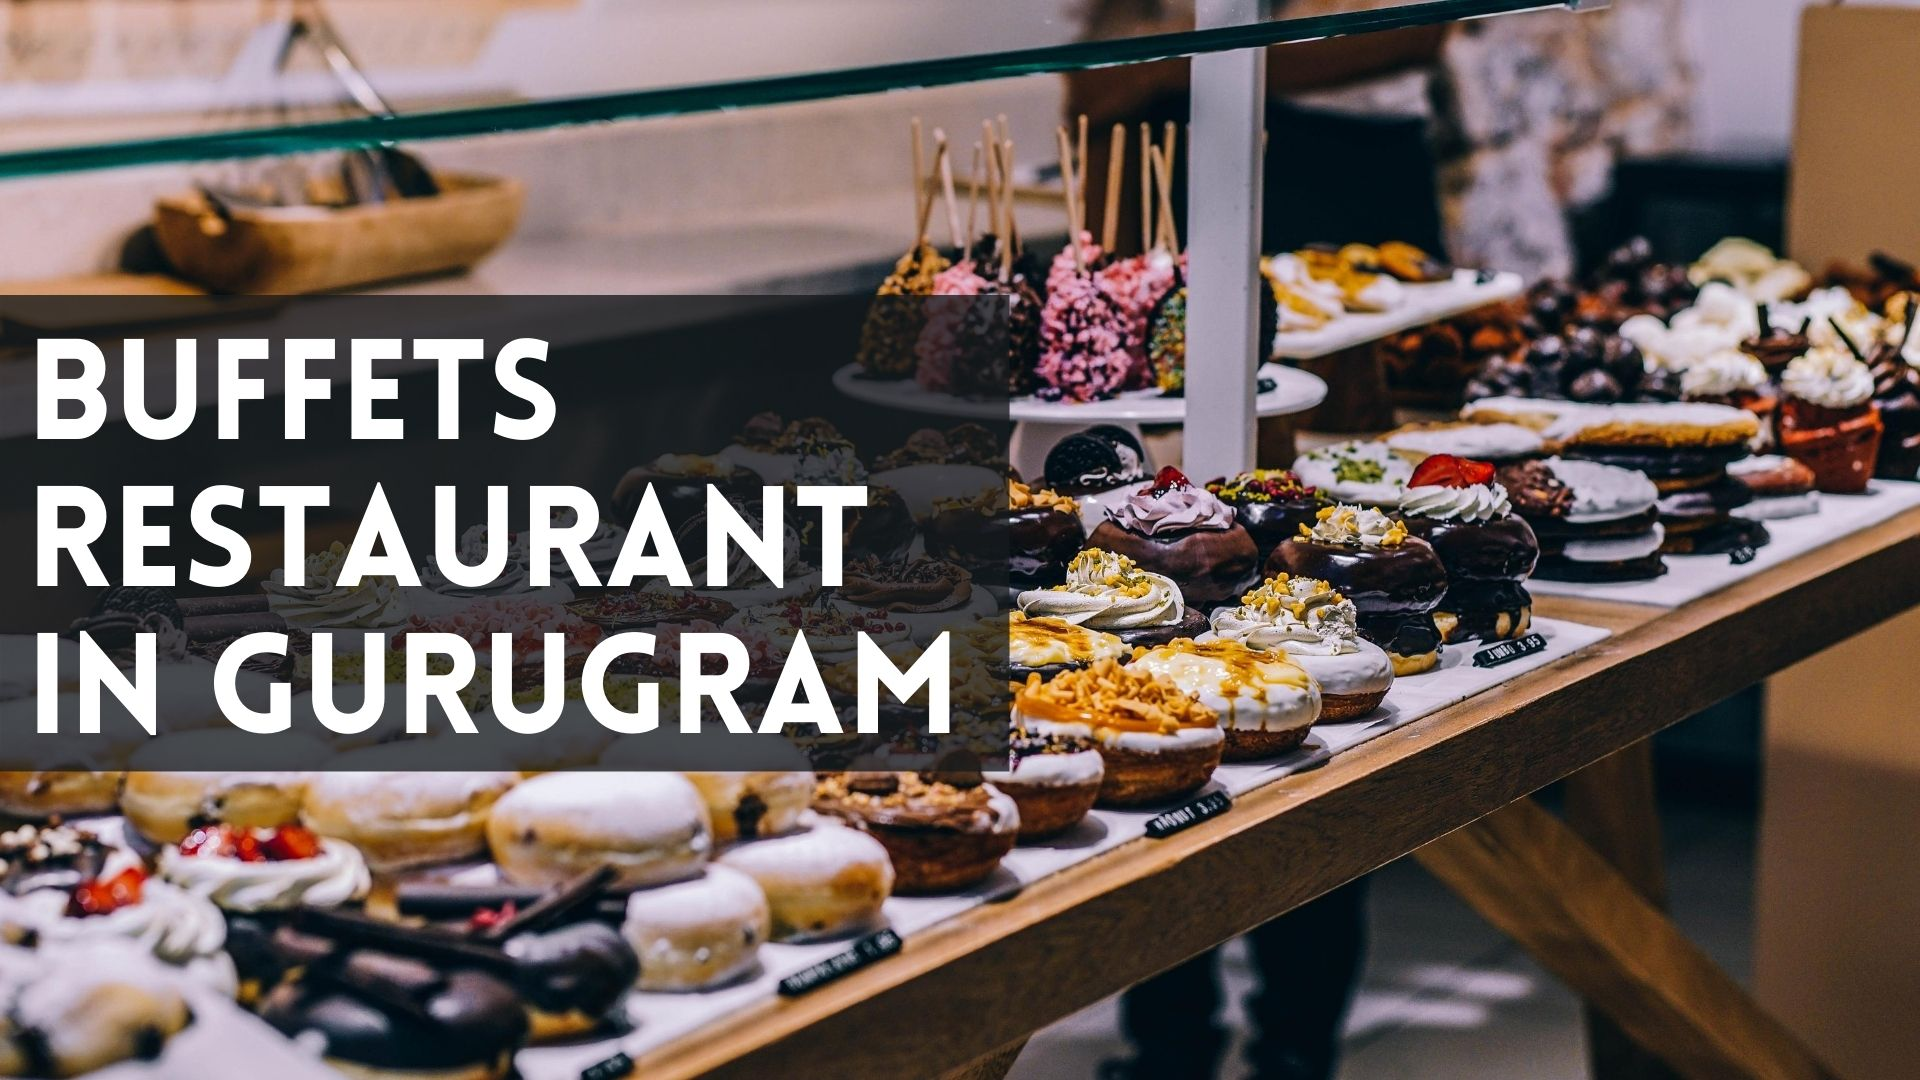 buffet restaurants in gurgaom